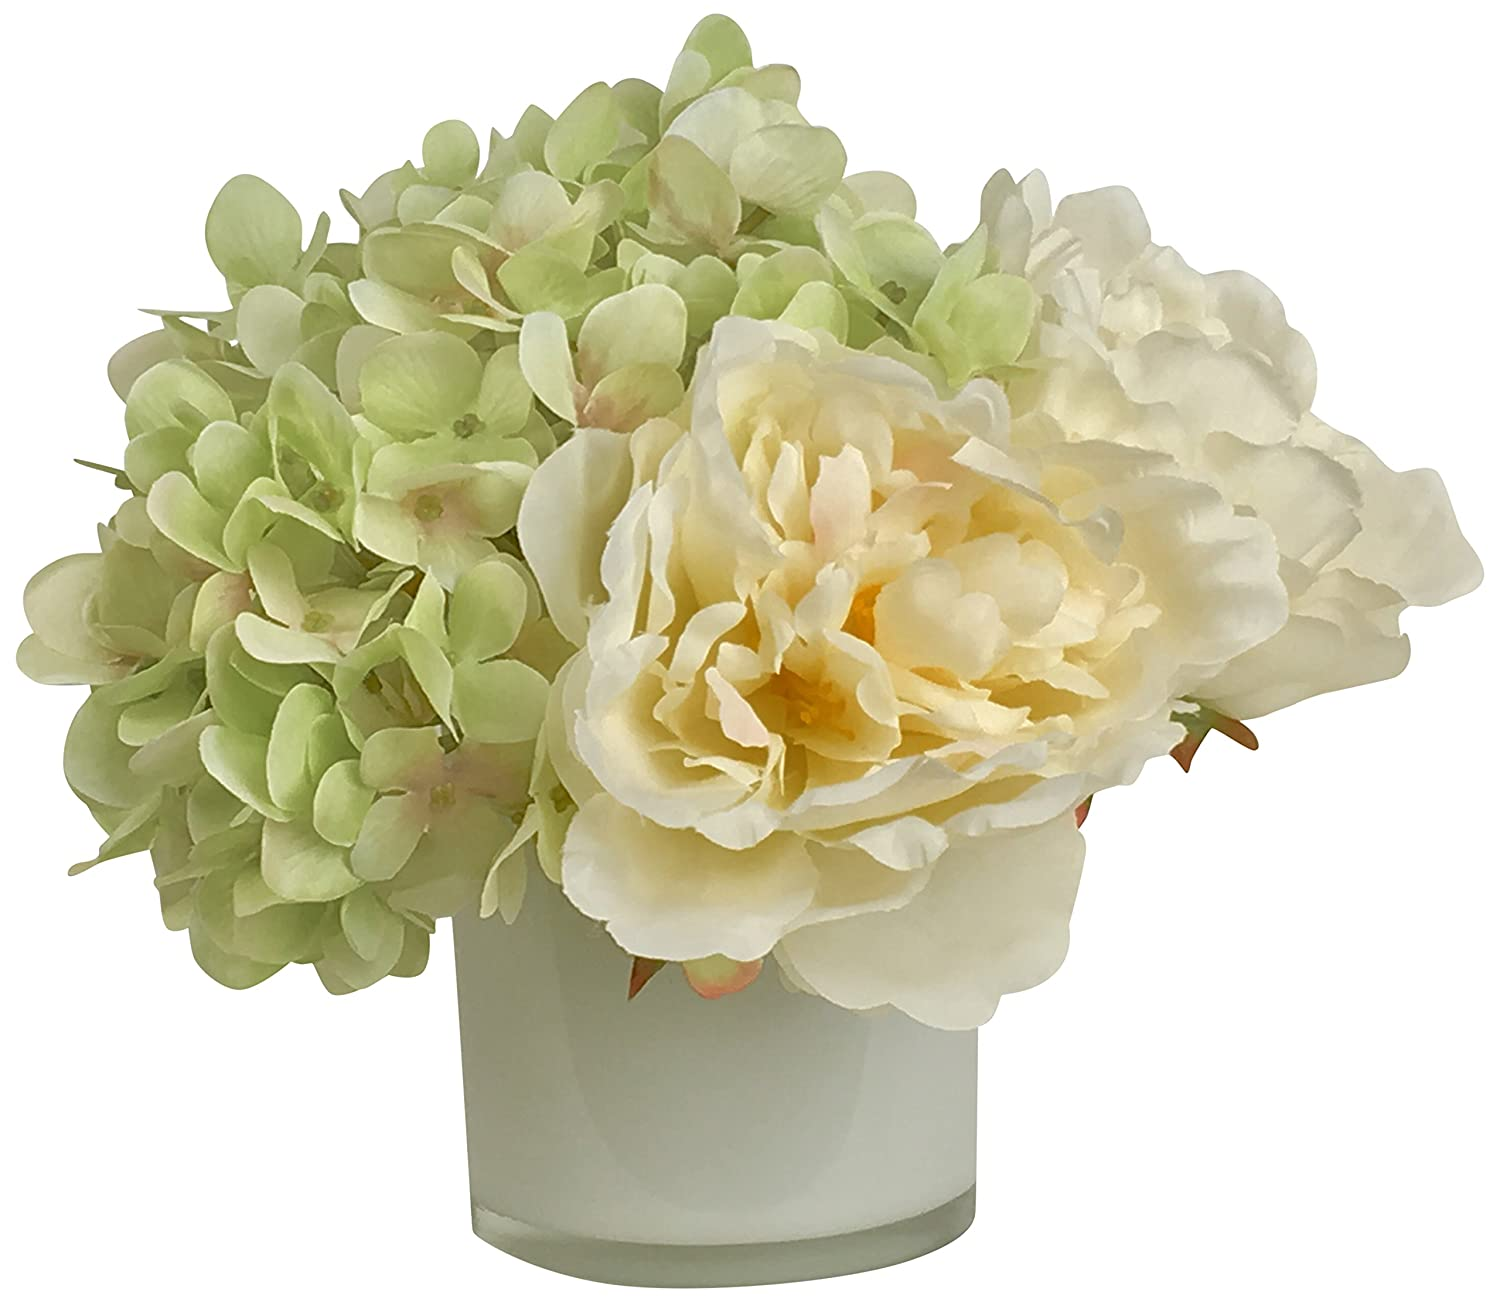 RG Style Silk Mixed in Decorative Vase Artificial Floral Arrangement